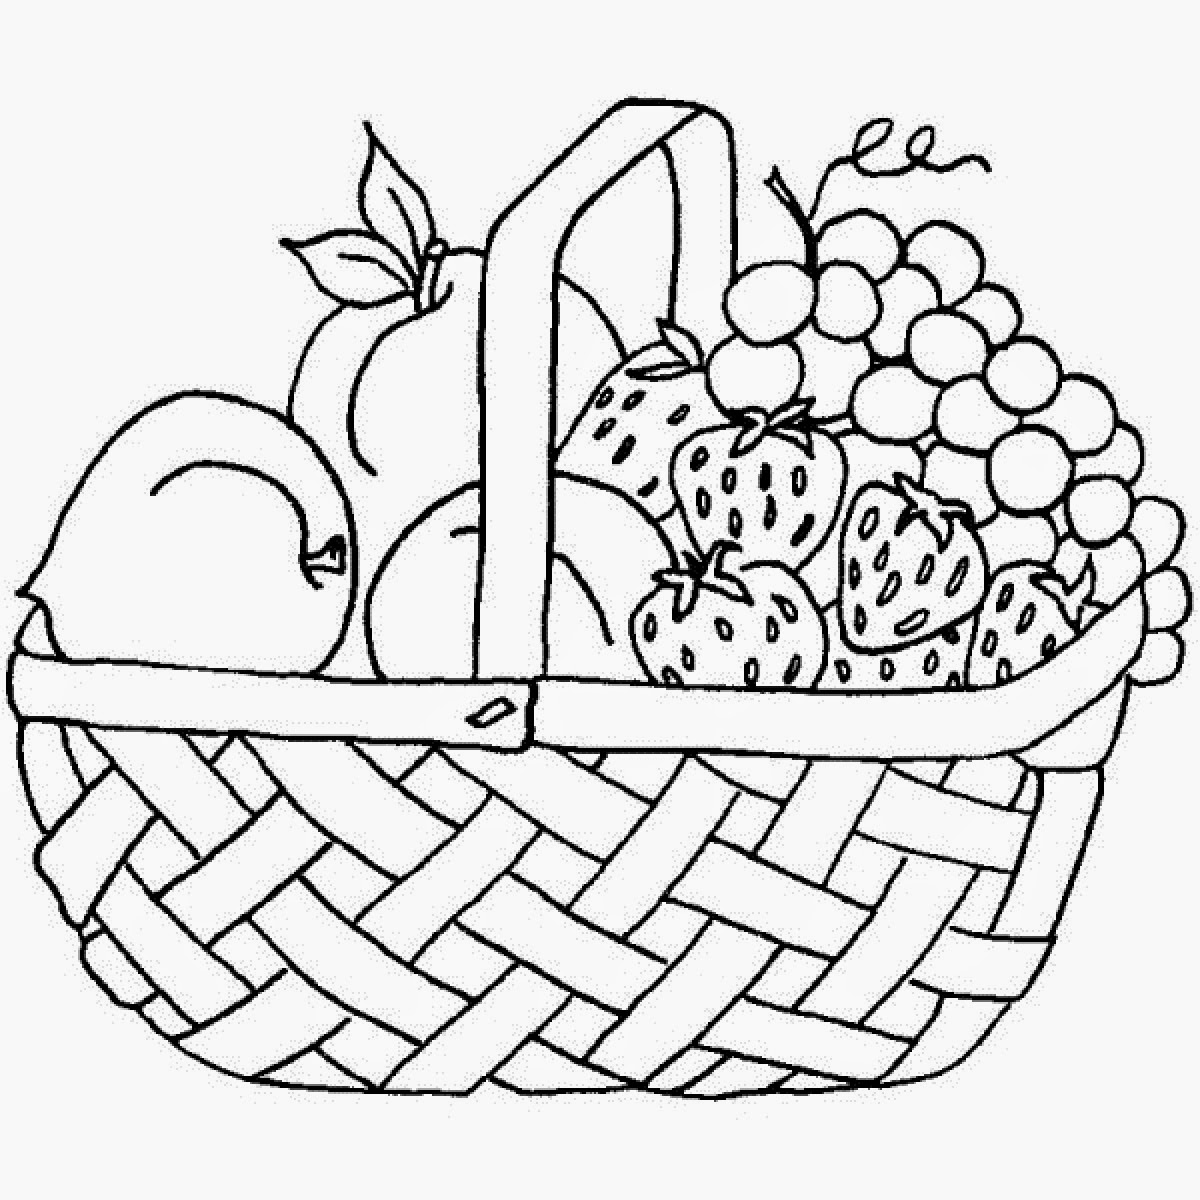 fruit and vegetables coloring pages - colours drawing wallpaper fruit basket pictures for kids